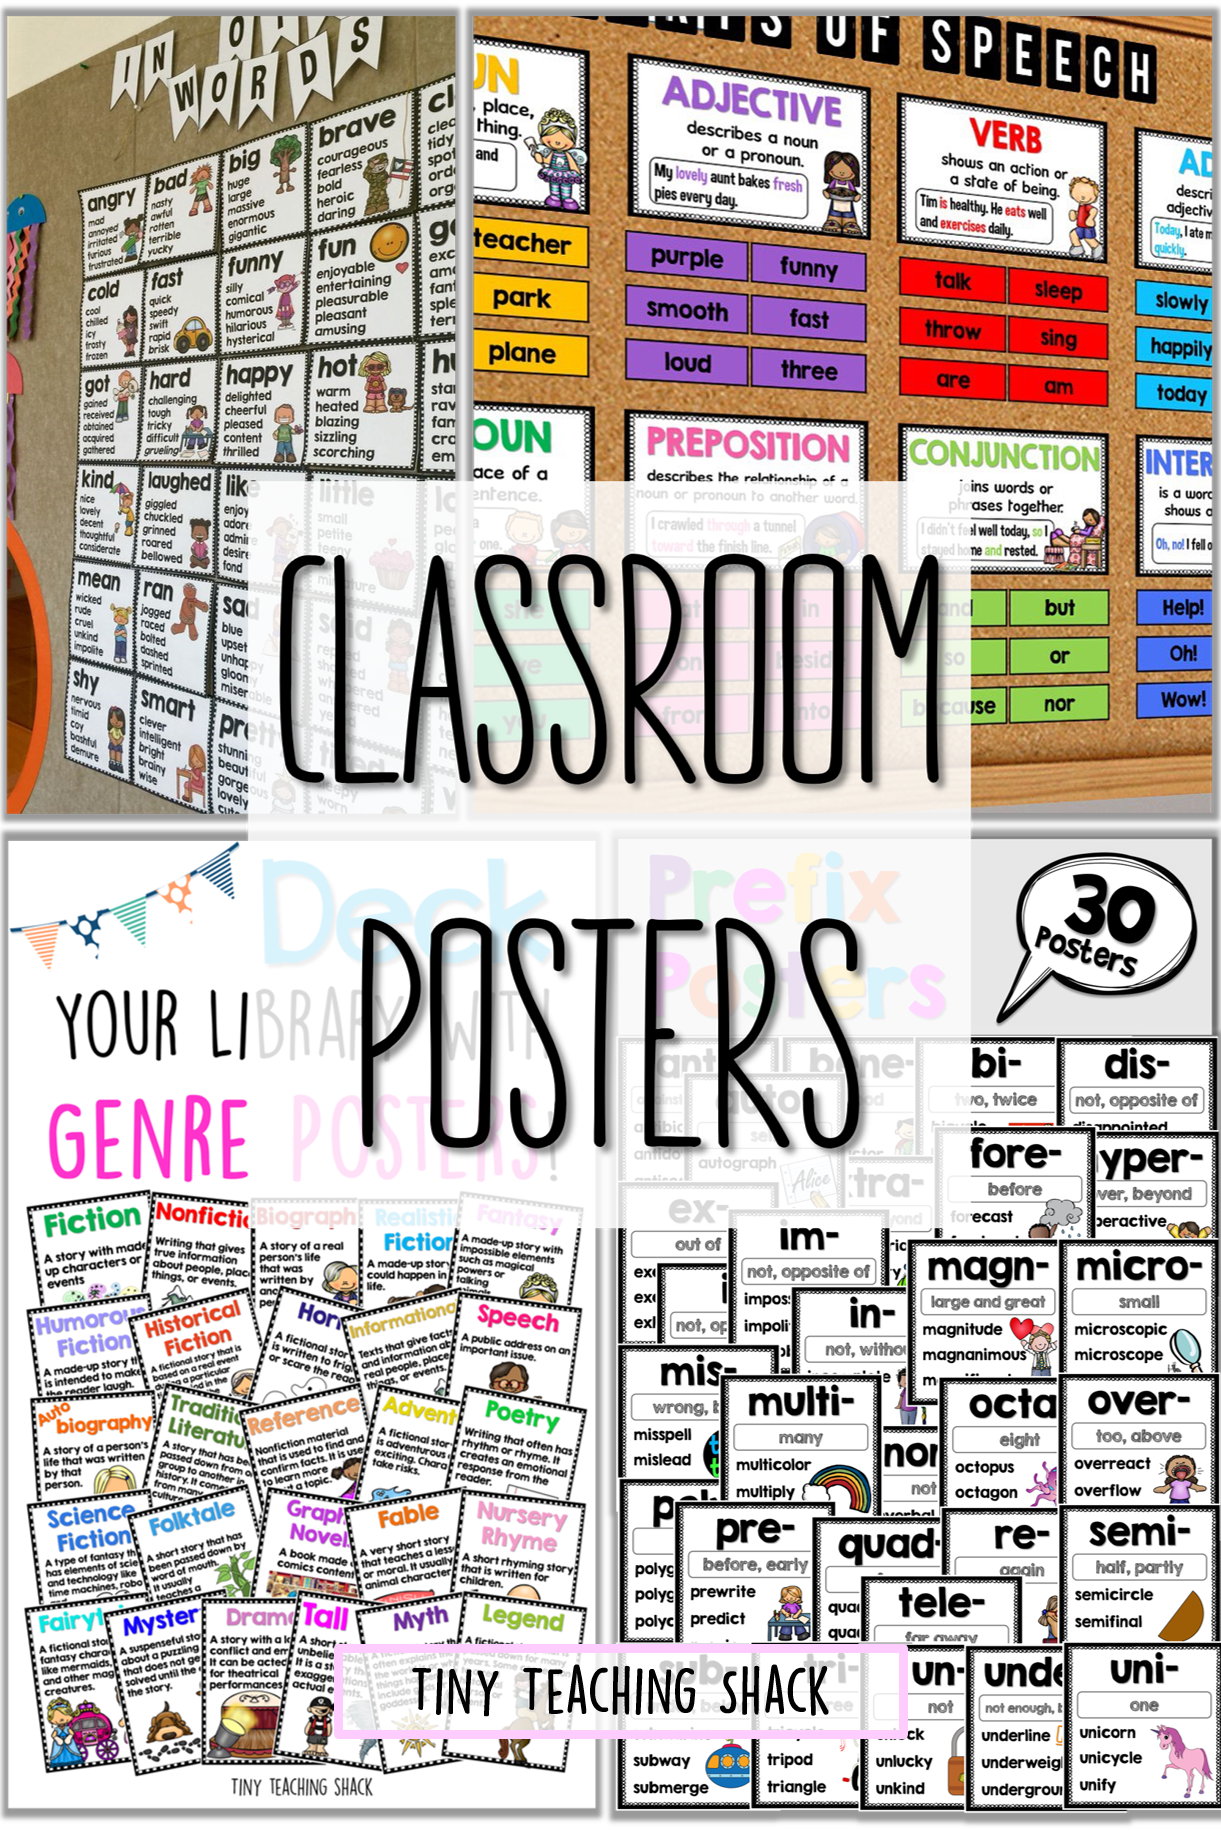 classroom posters- synonyms, antonyms, parts of speech ... - photo#9